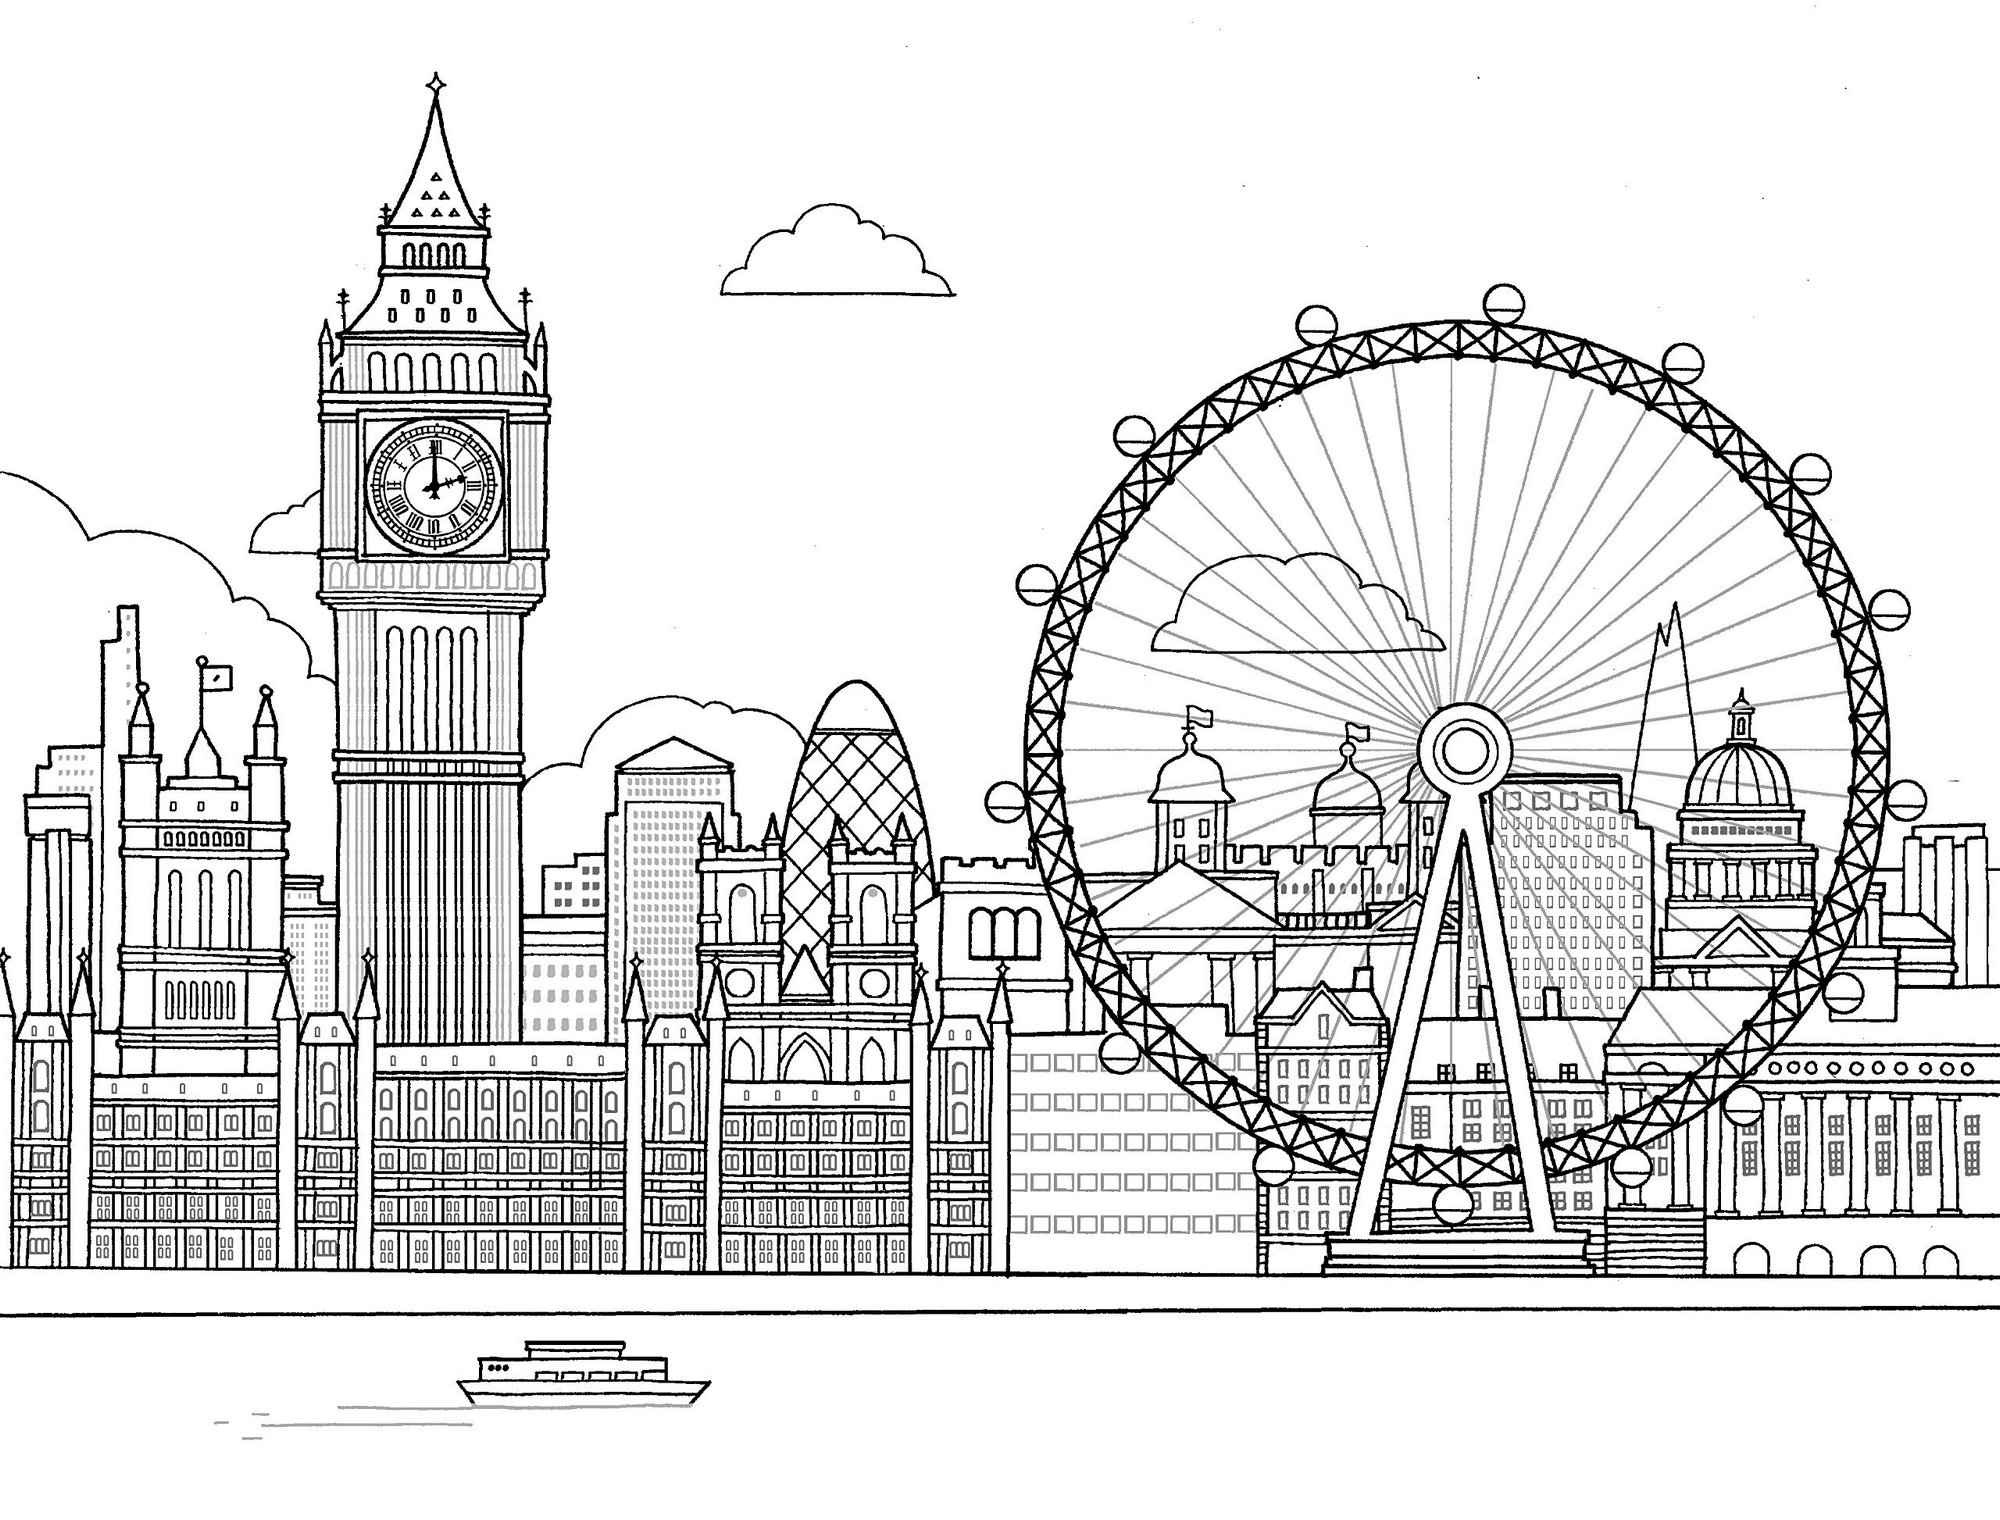 london coloring pages london coloring download london coloring for free 2019 london coloring pages